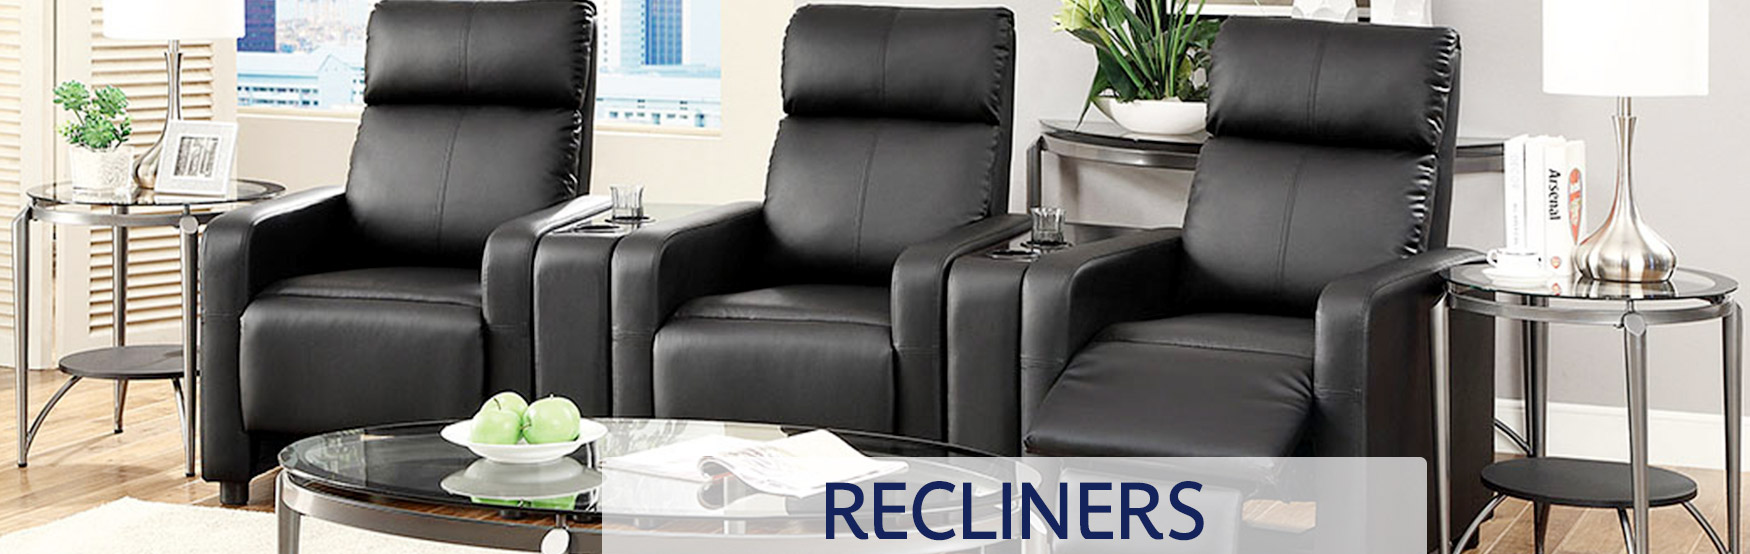 Recliners Banner